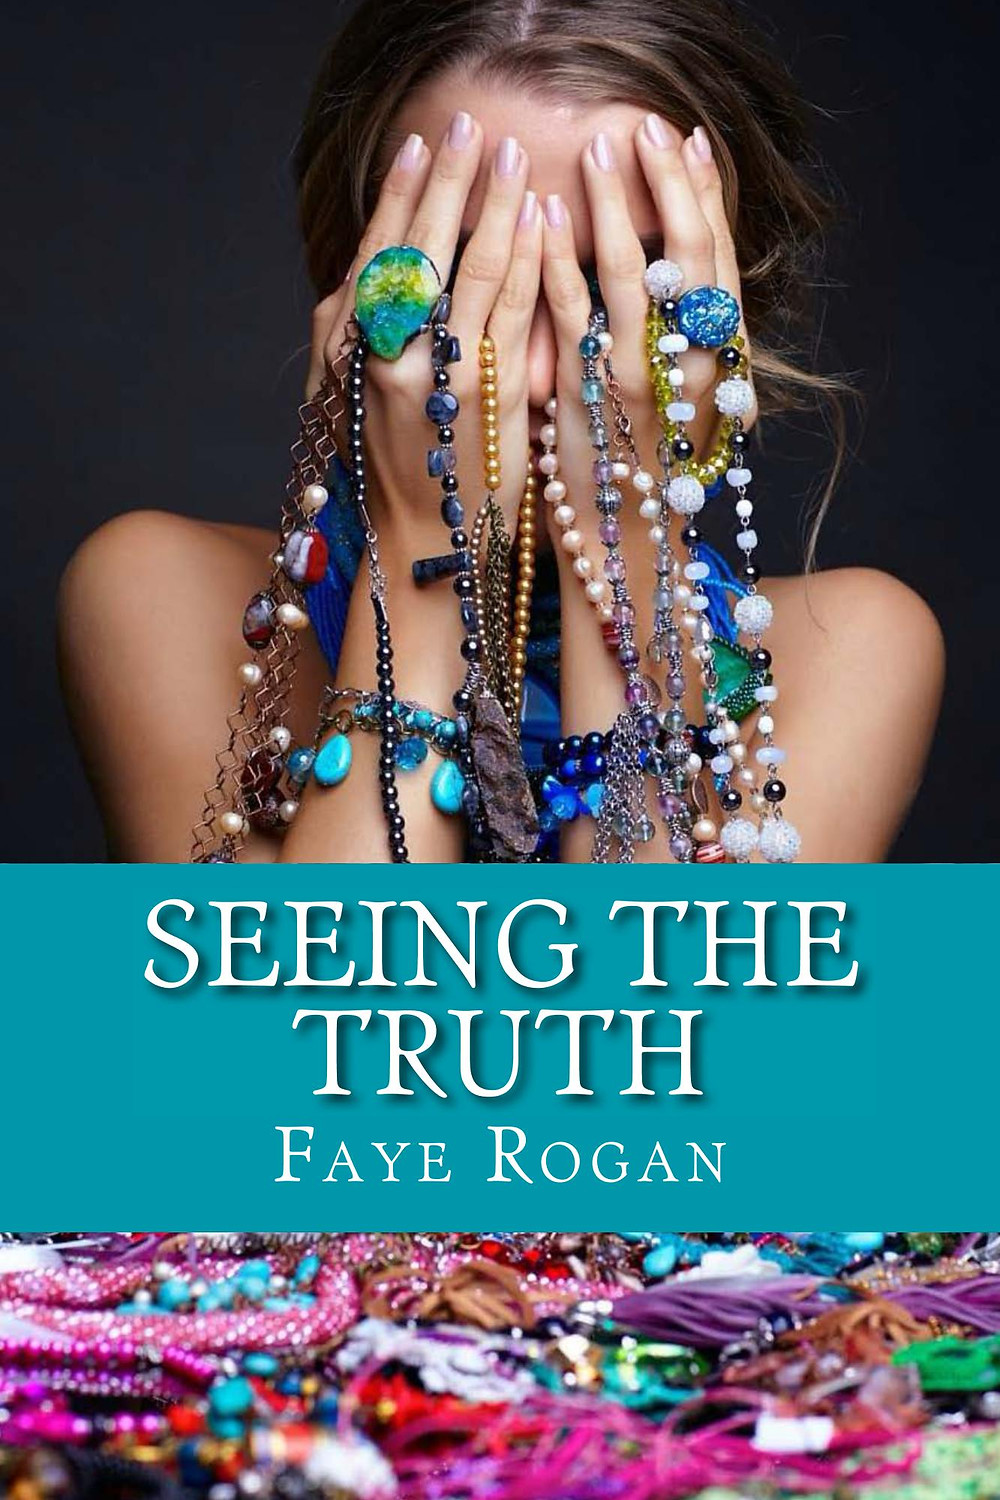 Seeing the Truth by Faye Rogan